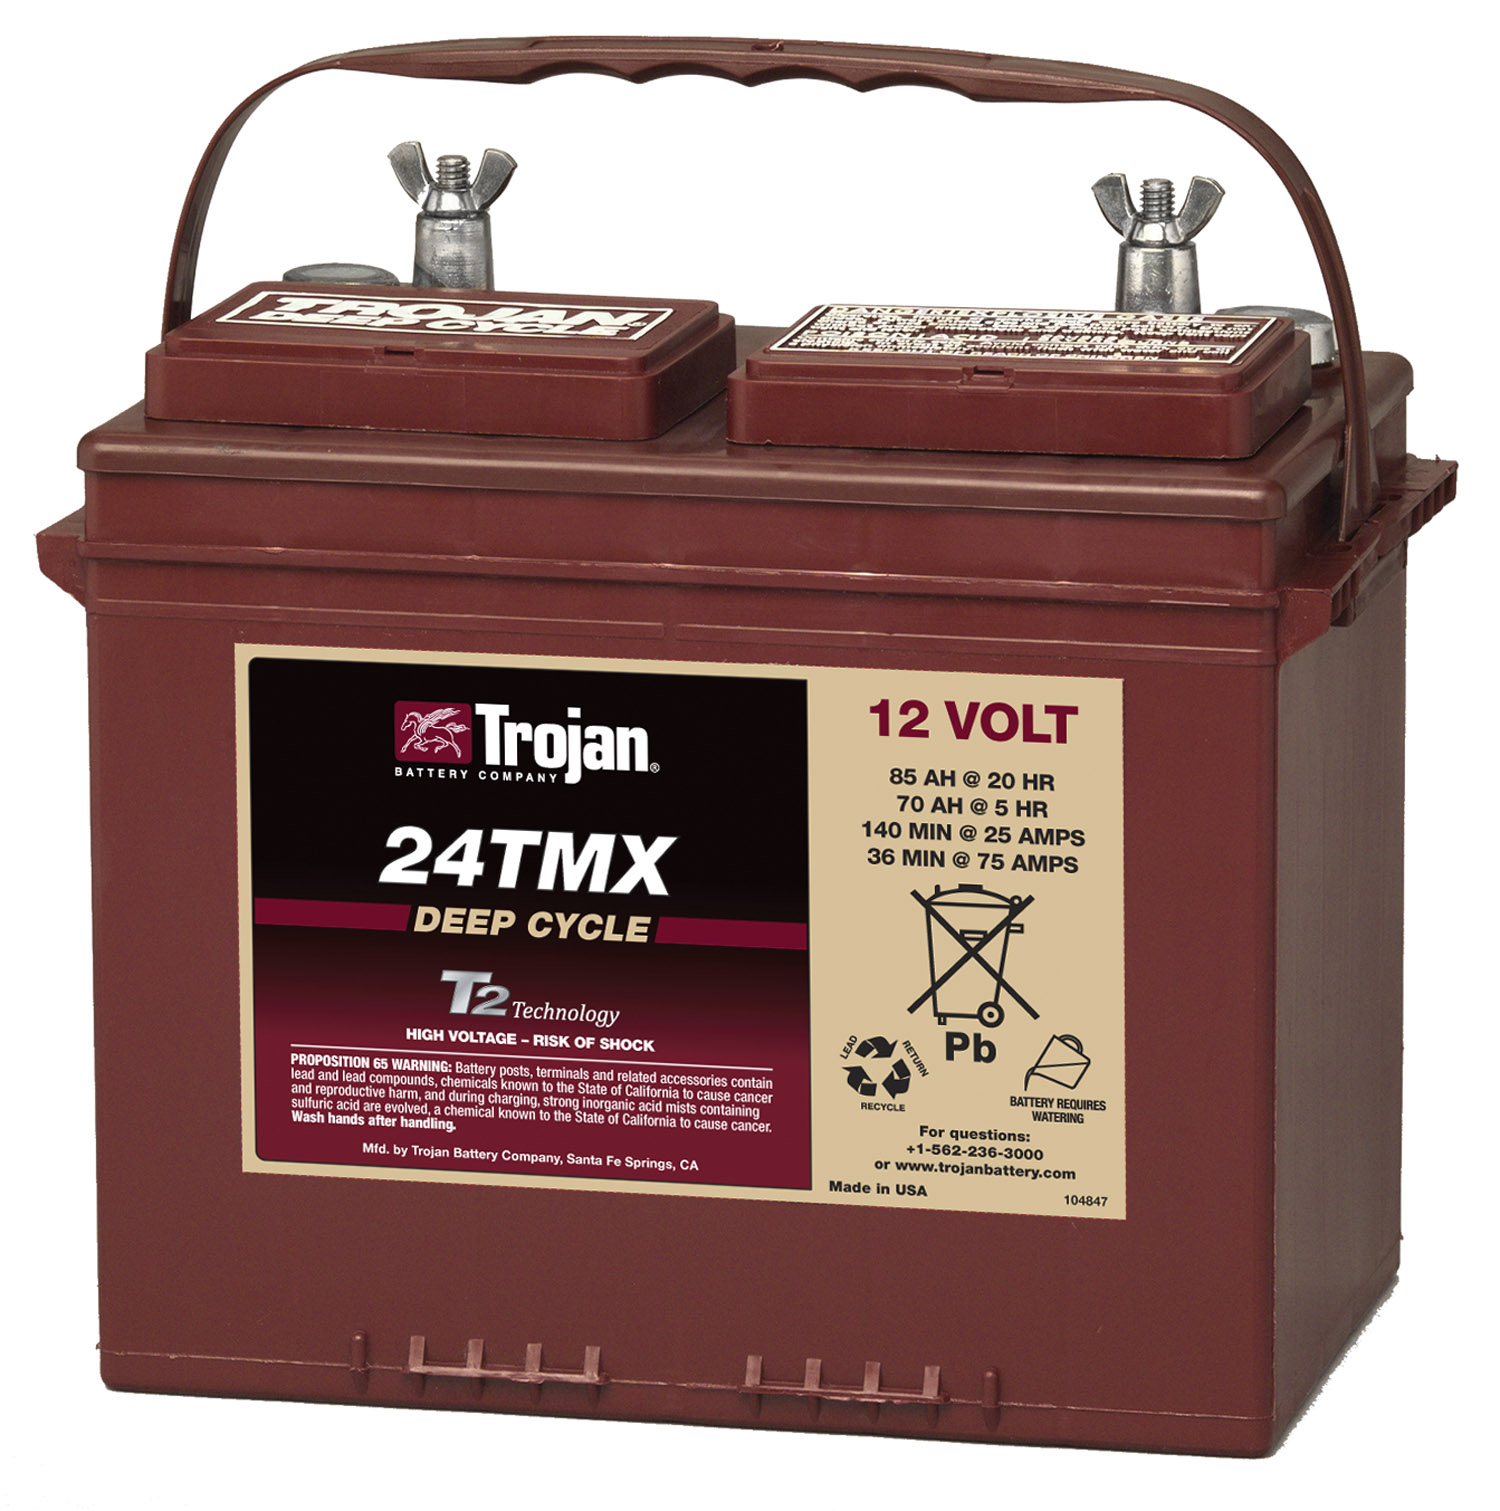 24tmx trojan 12 volt golf cart battery. Black Bedroom Furniture Sets. Home Design Ideas